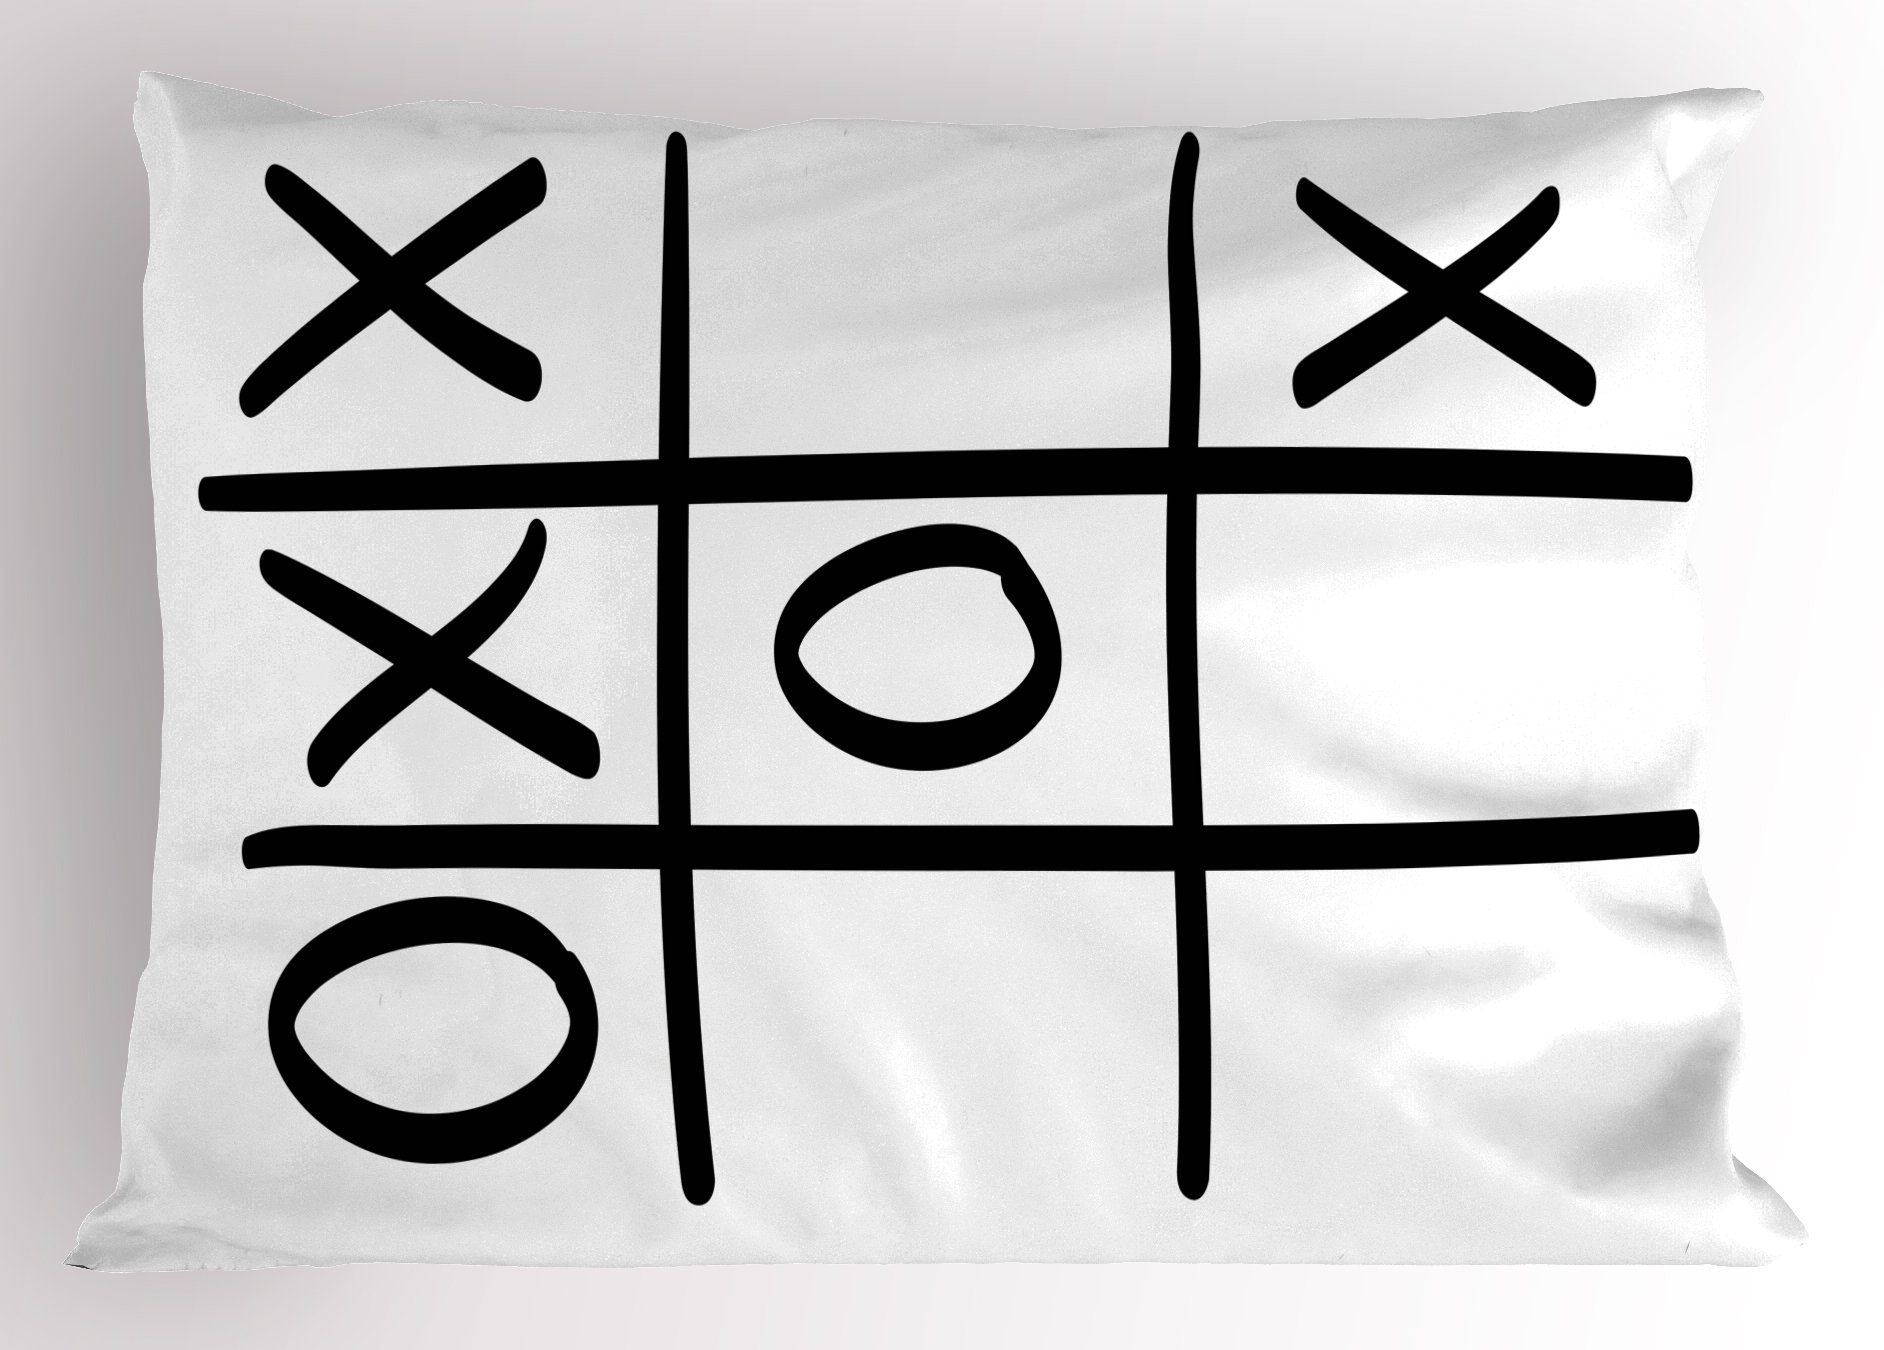 Ambesonne Xo Decor Pillow Sham, Tic Tac Toe Pattern Unfinished Game Hobby Theme Alphabet Minimalist Artful Image, Decorative Standard Queen Size Printed Pillowcase, 30 X 20 inches, Black White